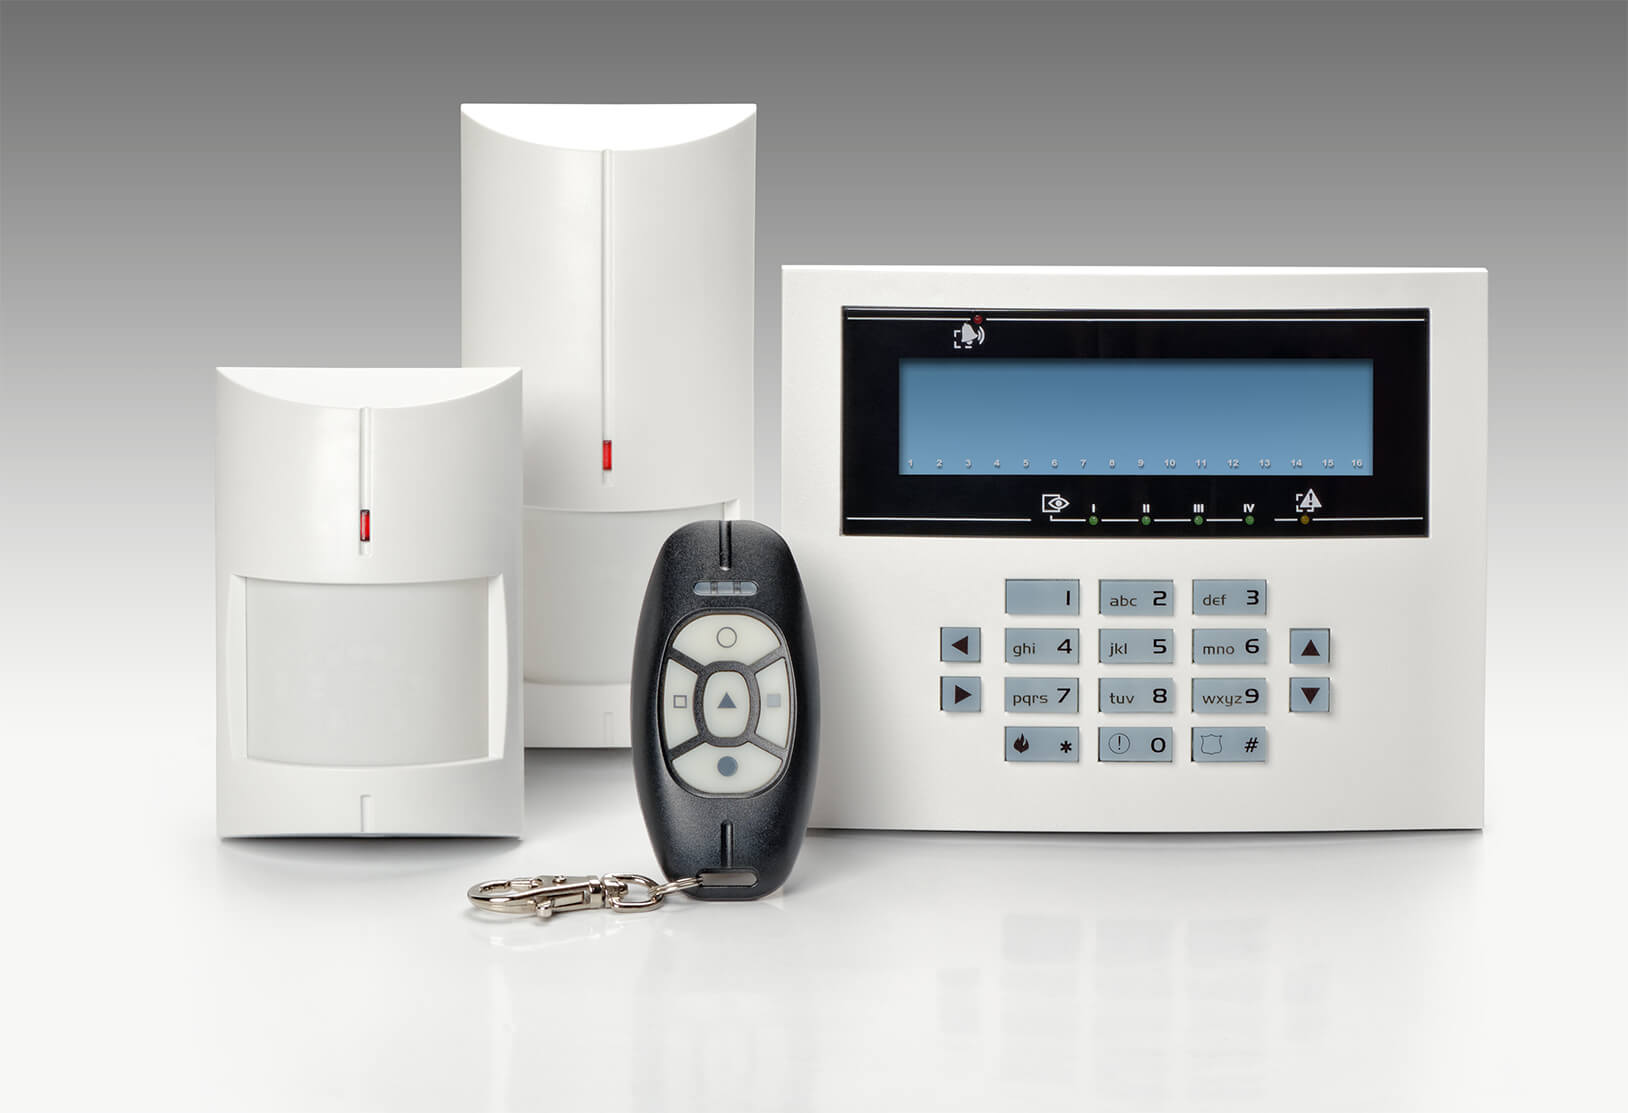 Business & Residential NACOSS Approved Burglar Alarms In Clapham Junction SW11 - Local Clapham Junction SW11 security company.Call 02078872244 - Dedicated to Safety & Security. Companies, shops and homes ..